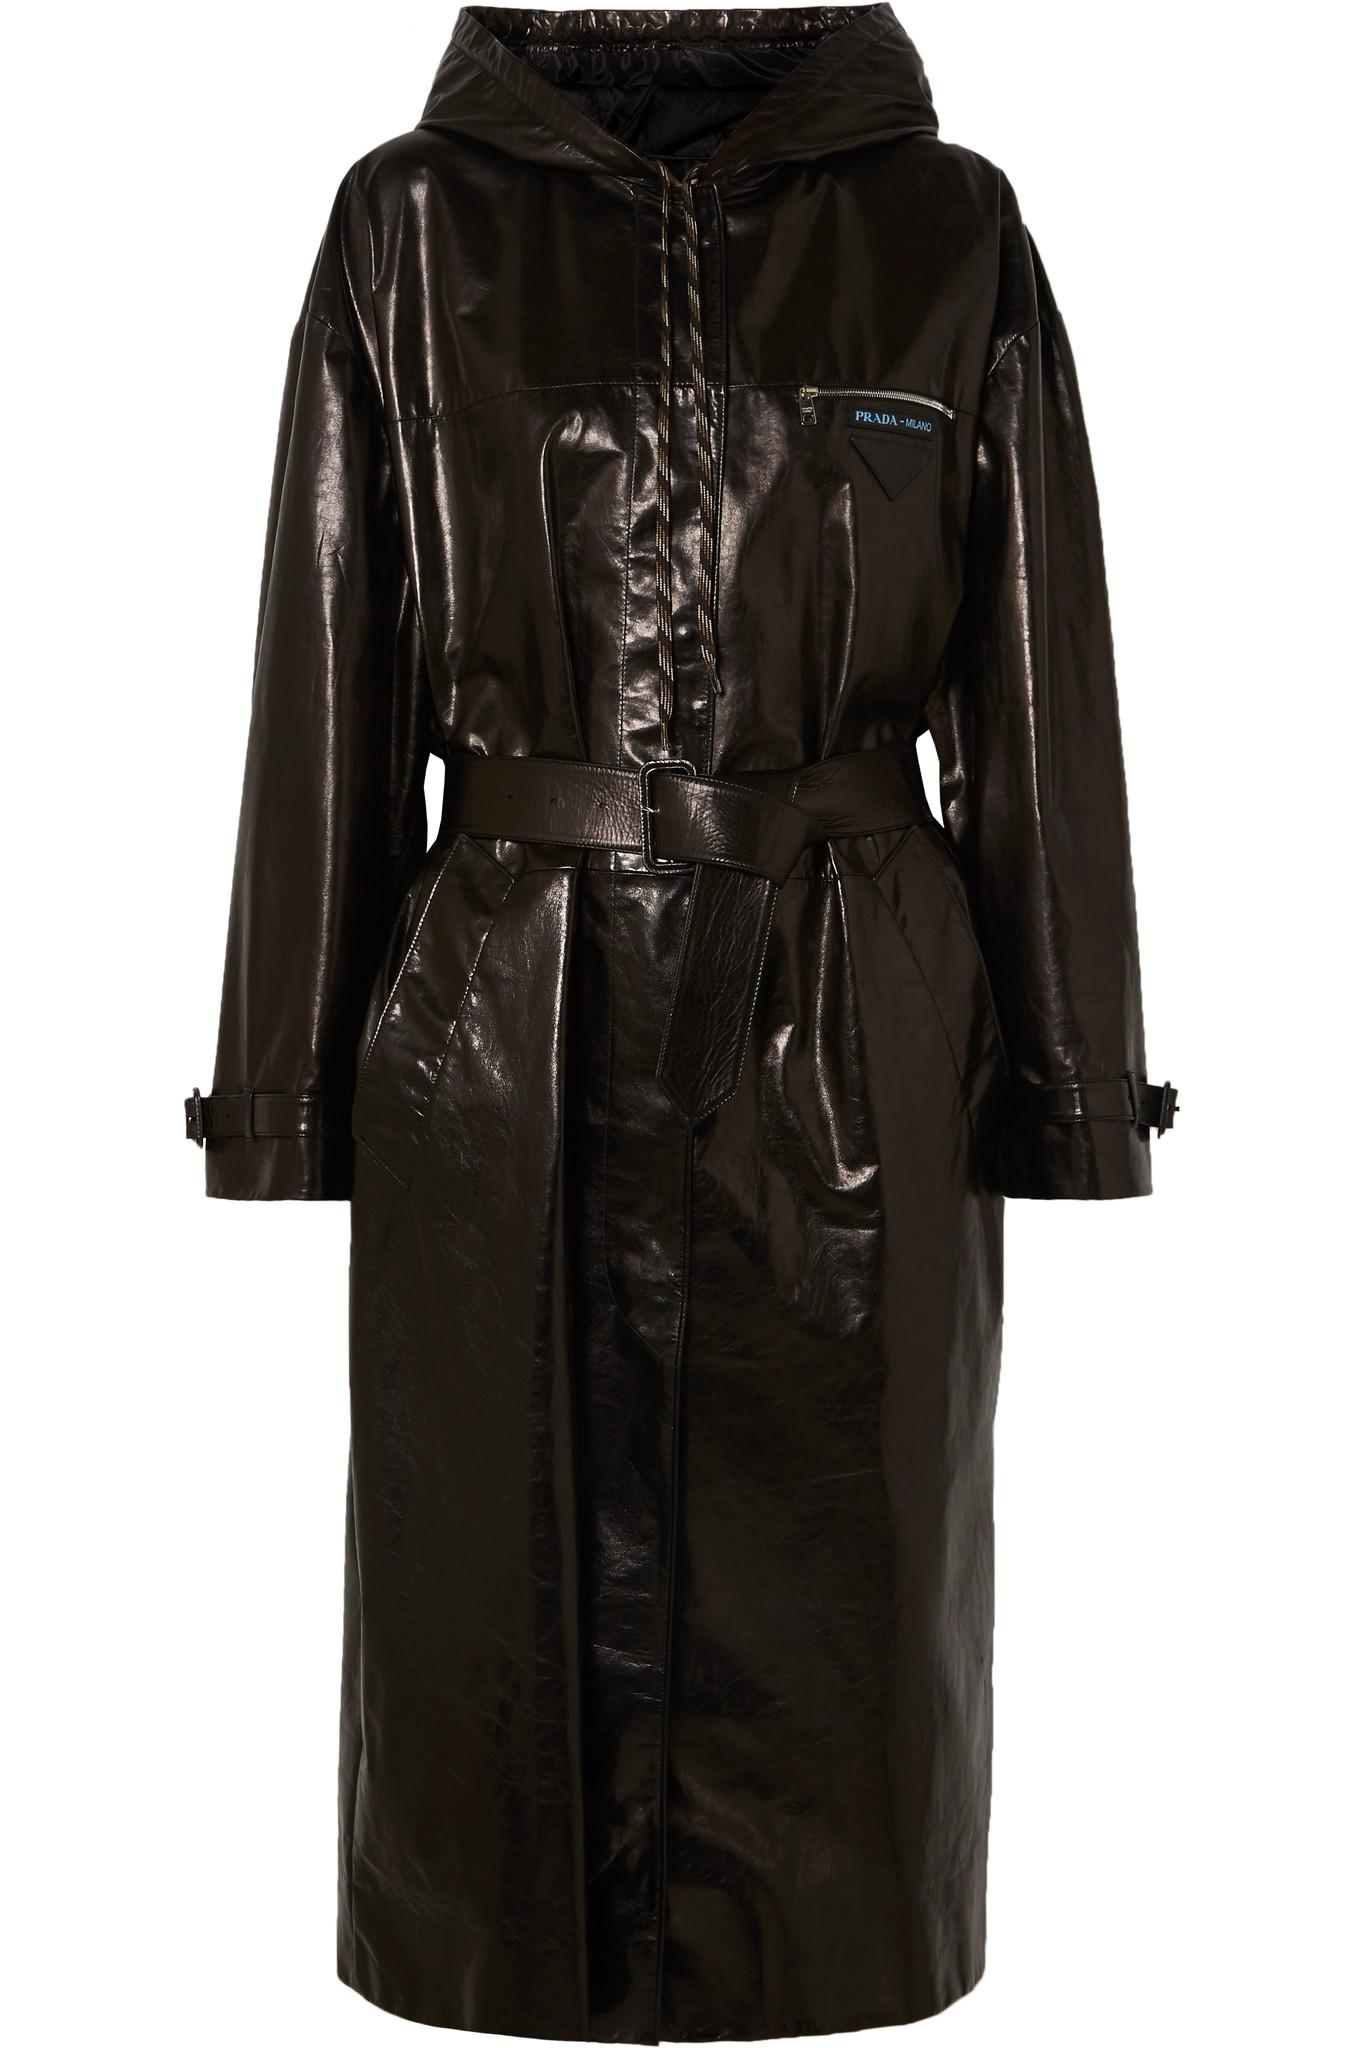 c757fa5bc4f4 Prada - Black Hooded Patent-leather Trench Coat - Lyst. View fullscreen